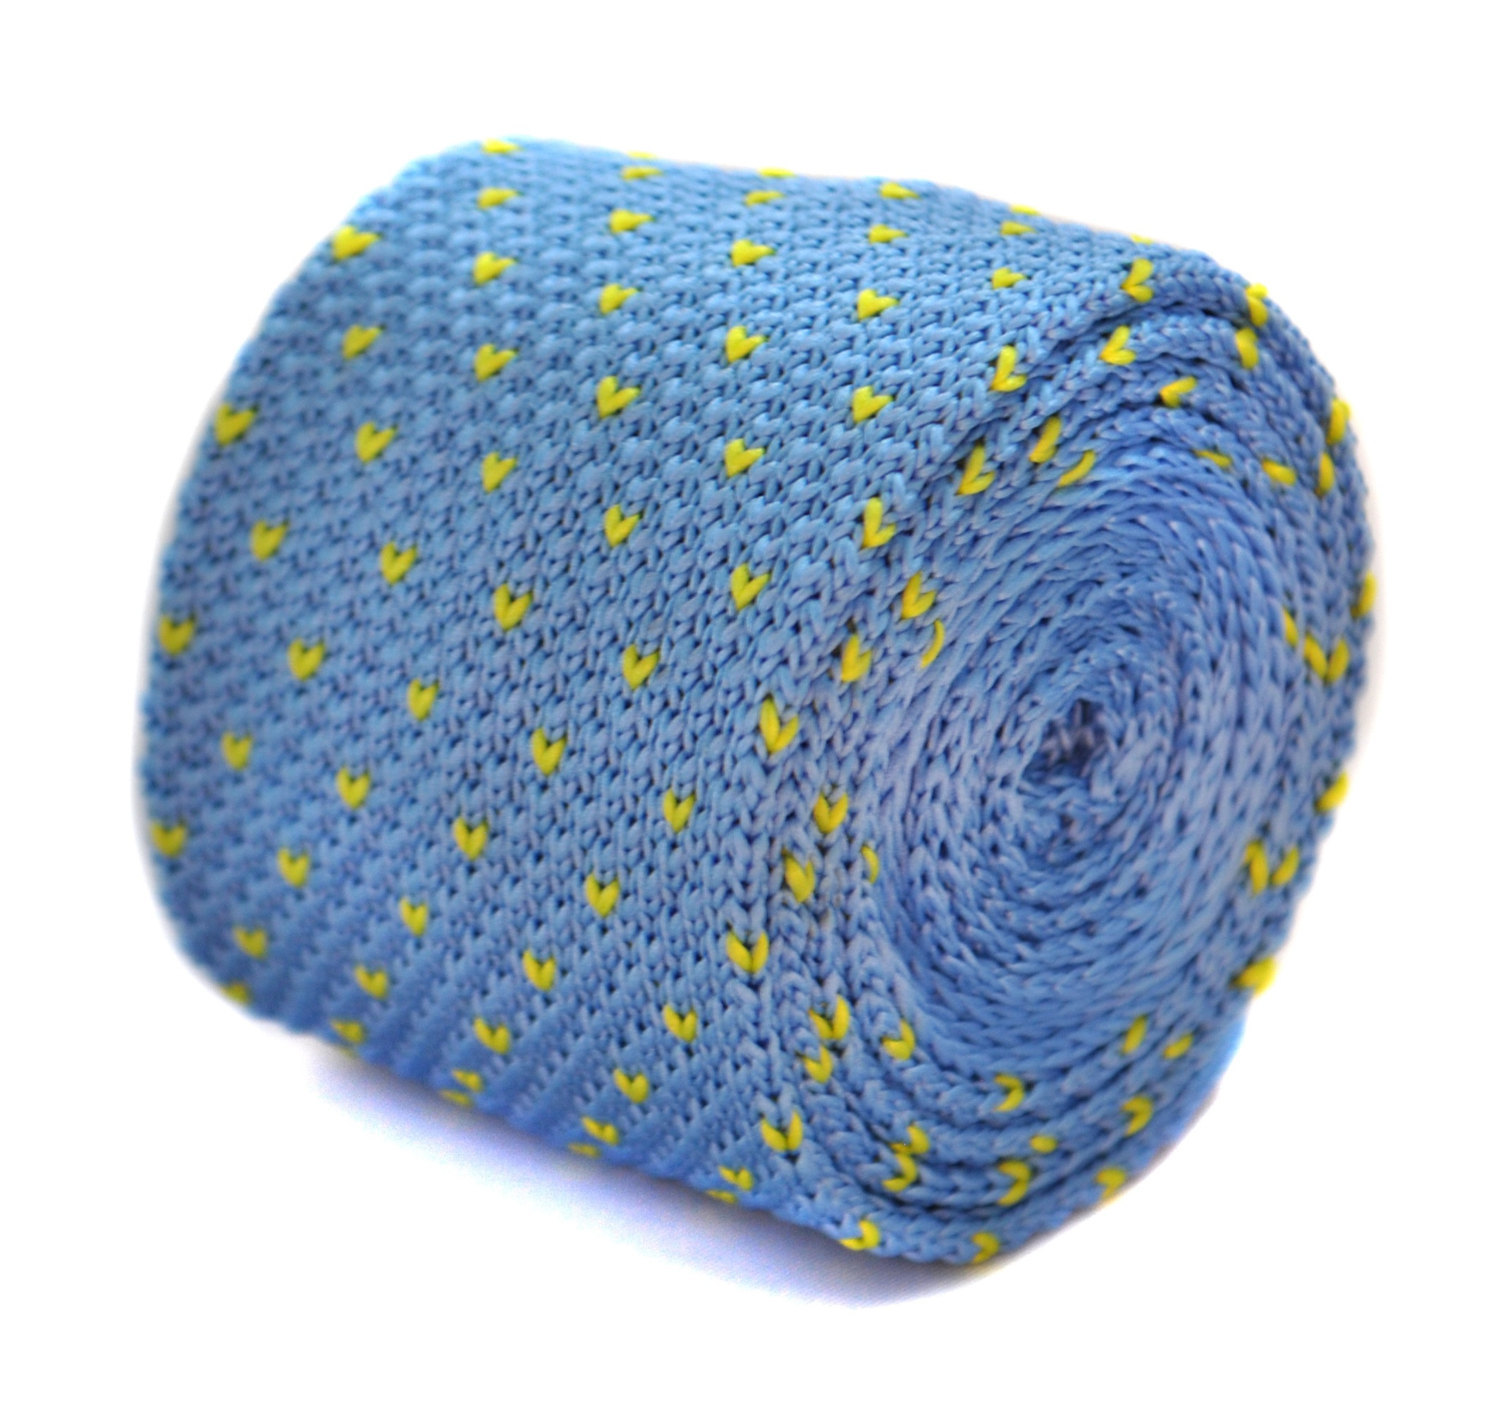 light blue and yellow pin spot skinny knitted tie by Frederick Thomas FT2036